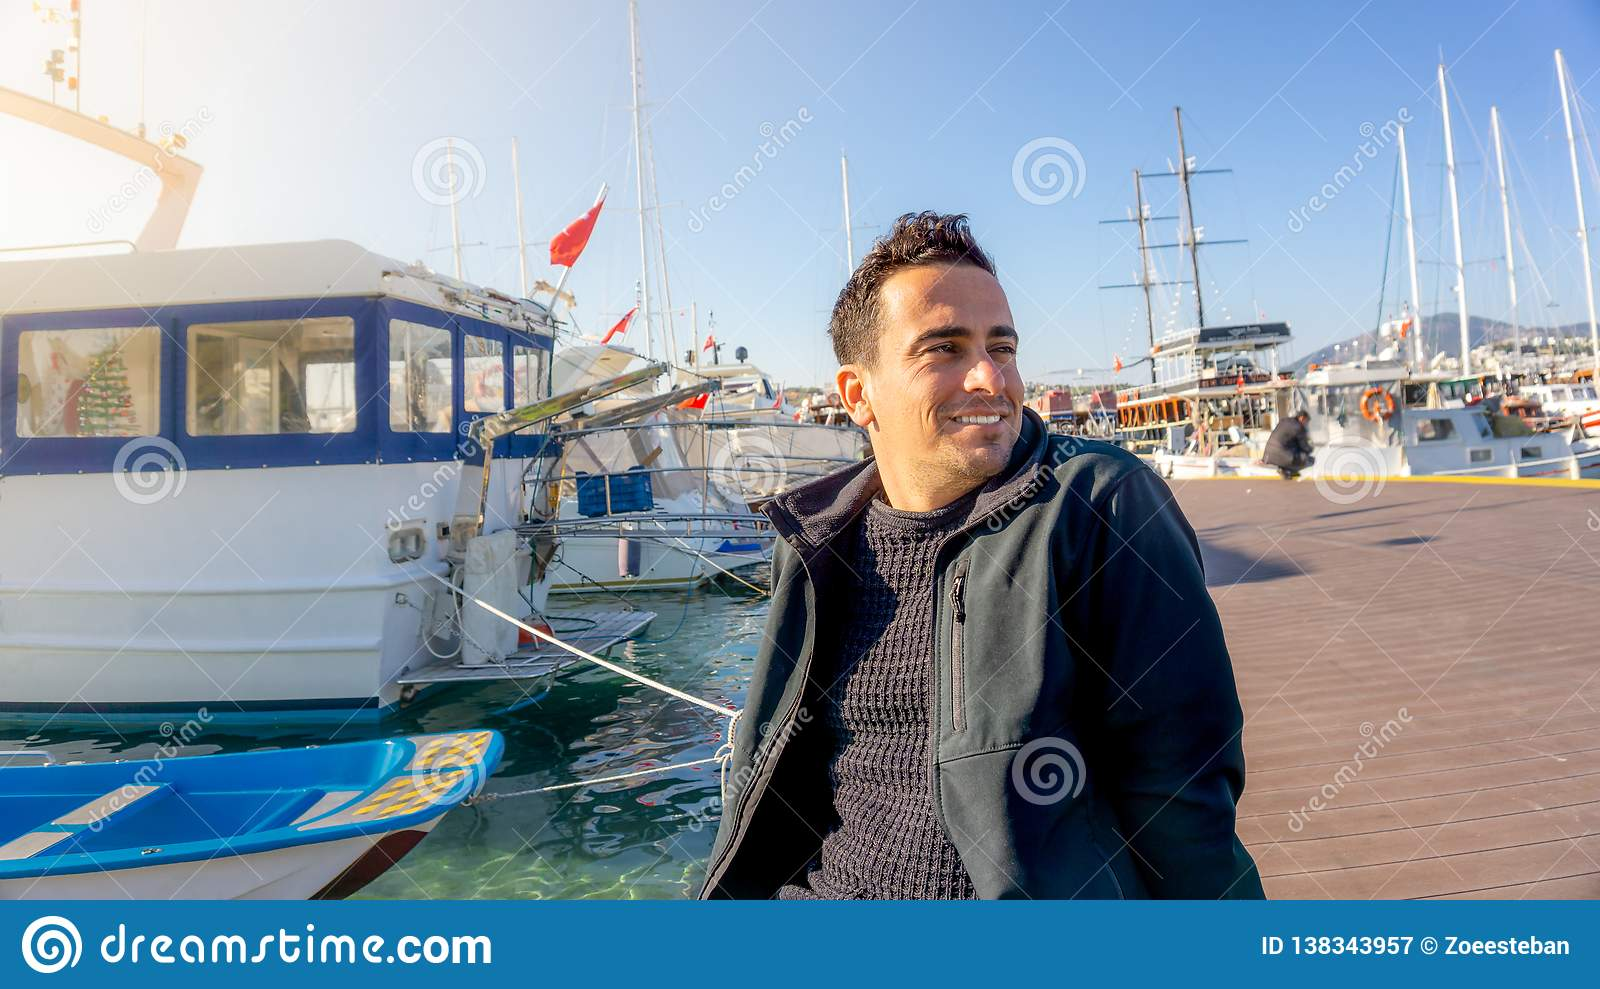 Young turkish tourist man smiling during sunset in Bodrum marina, Turkey. Sailing boats, sailor, and clear days